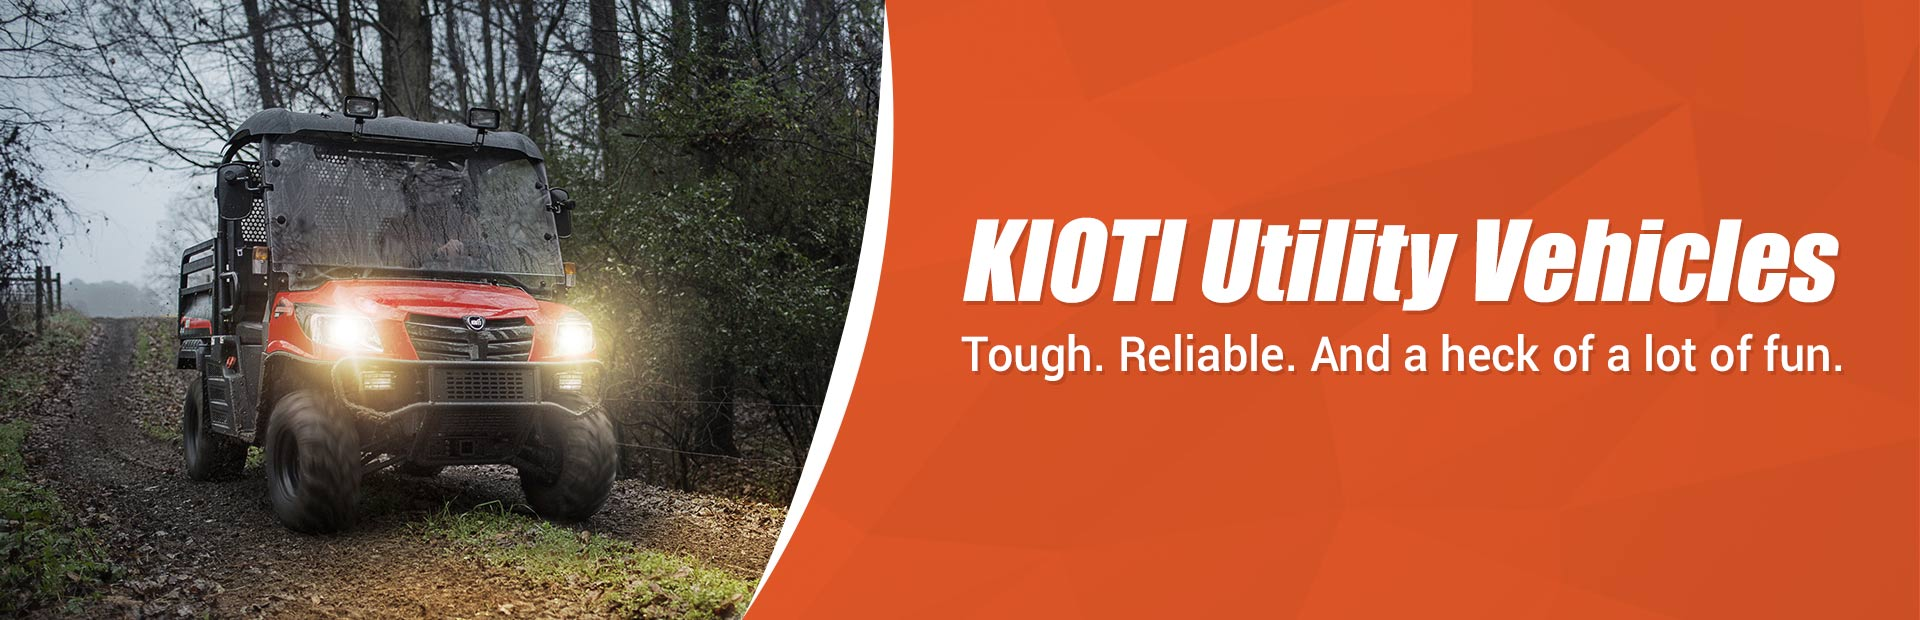 KIOTI Utility Vehicles: Click here to view the models.